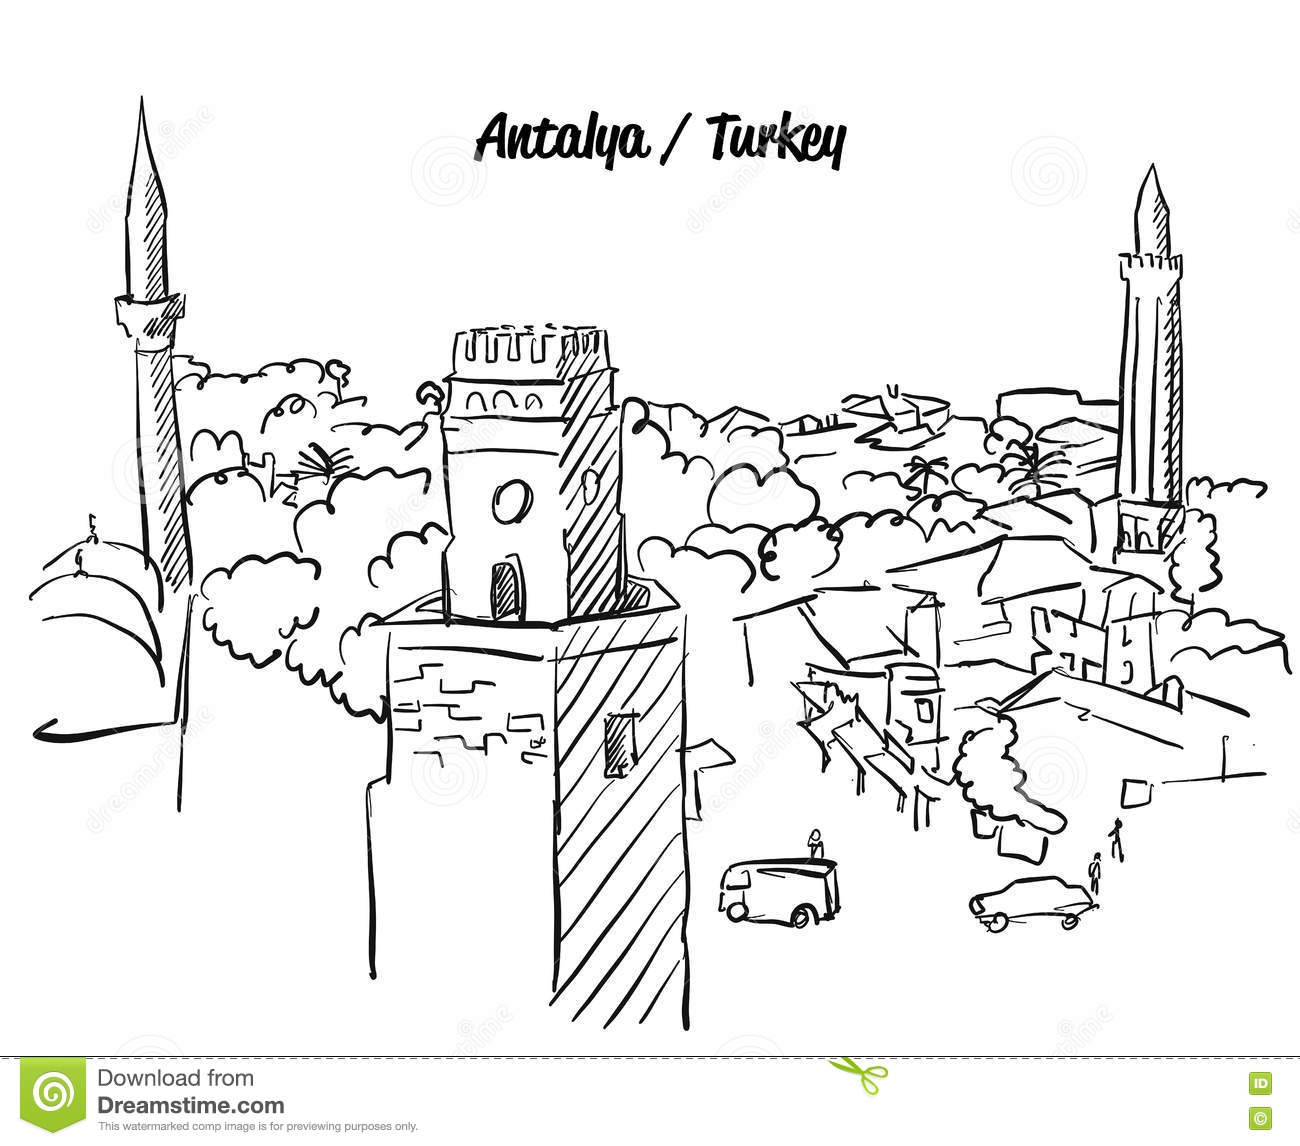 antalya turkey old town colouring page famous destination landmark hand drawn vector artwork